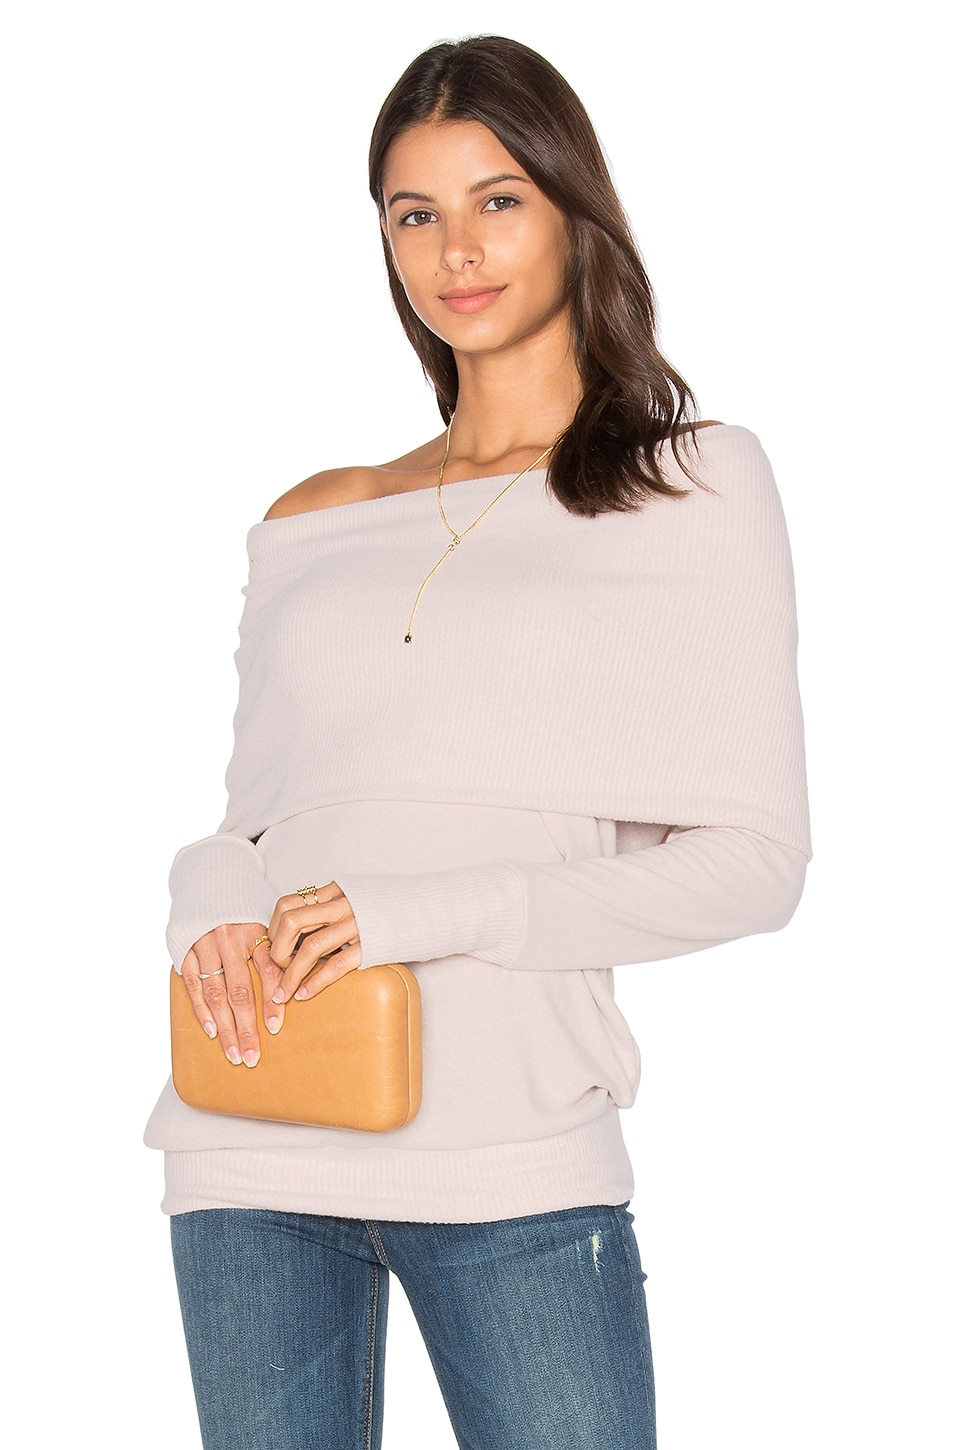 Long Sleeve Convertible Top by Michael Stars